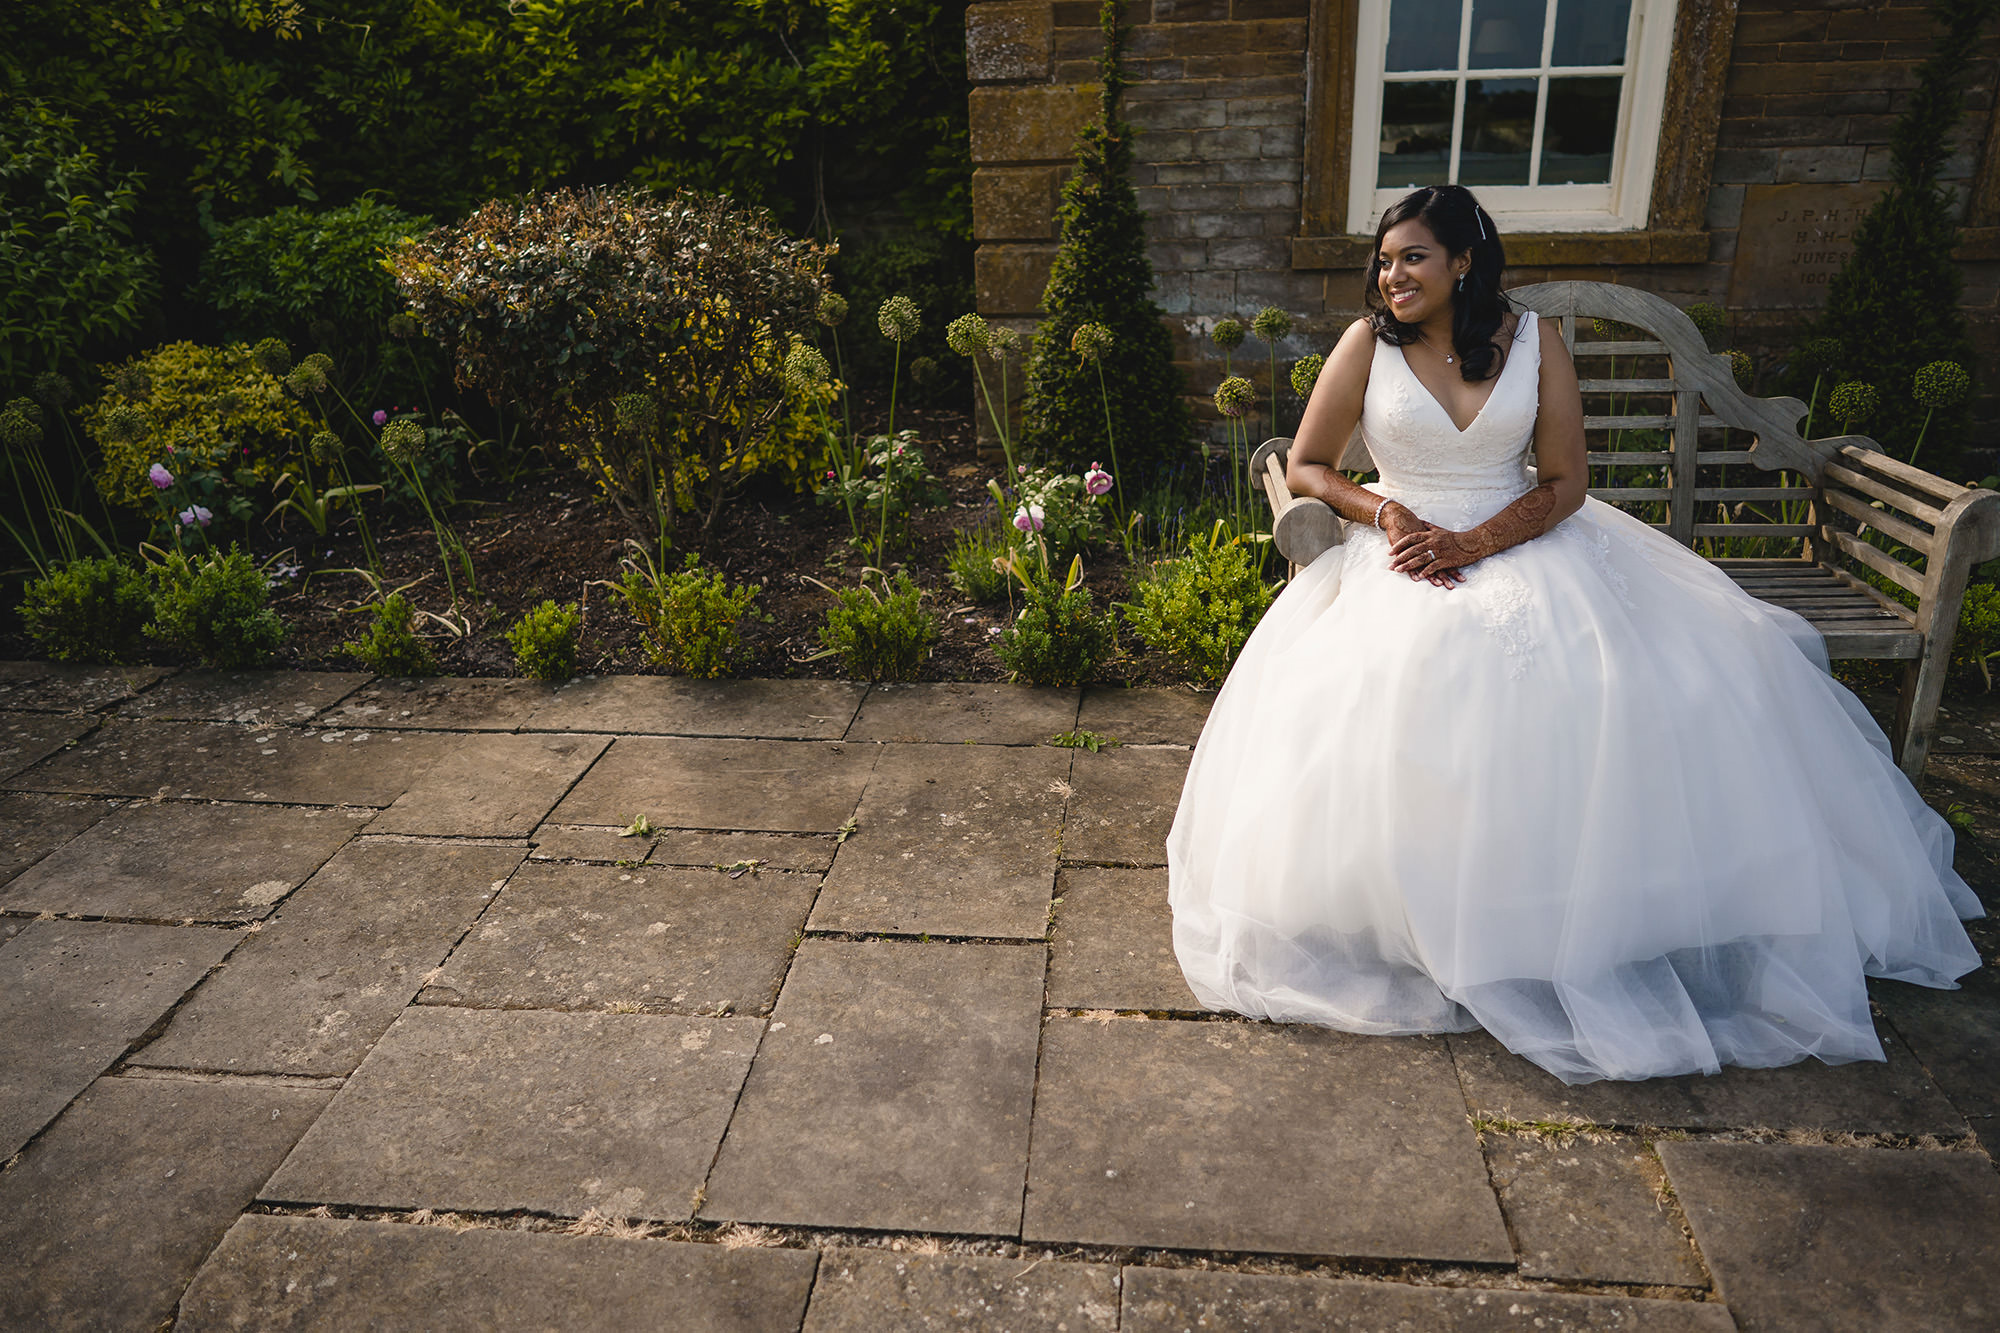 bridal portrait in her white dress at poundon house